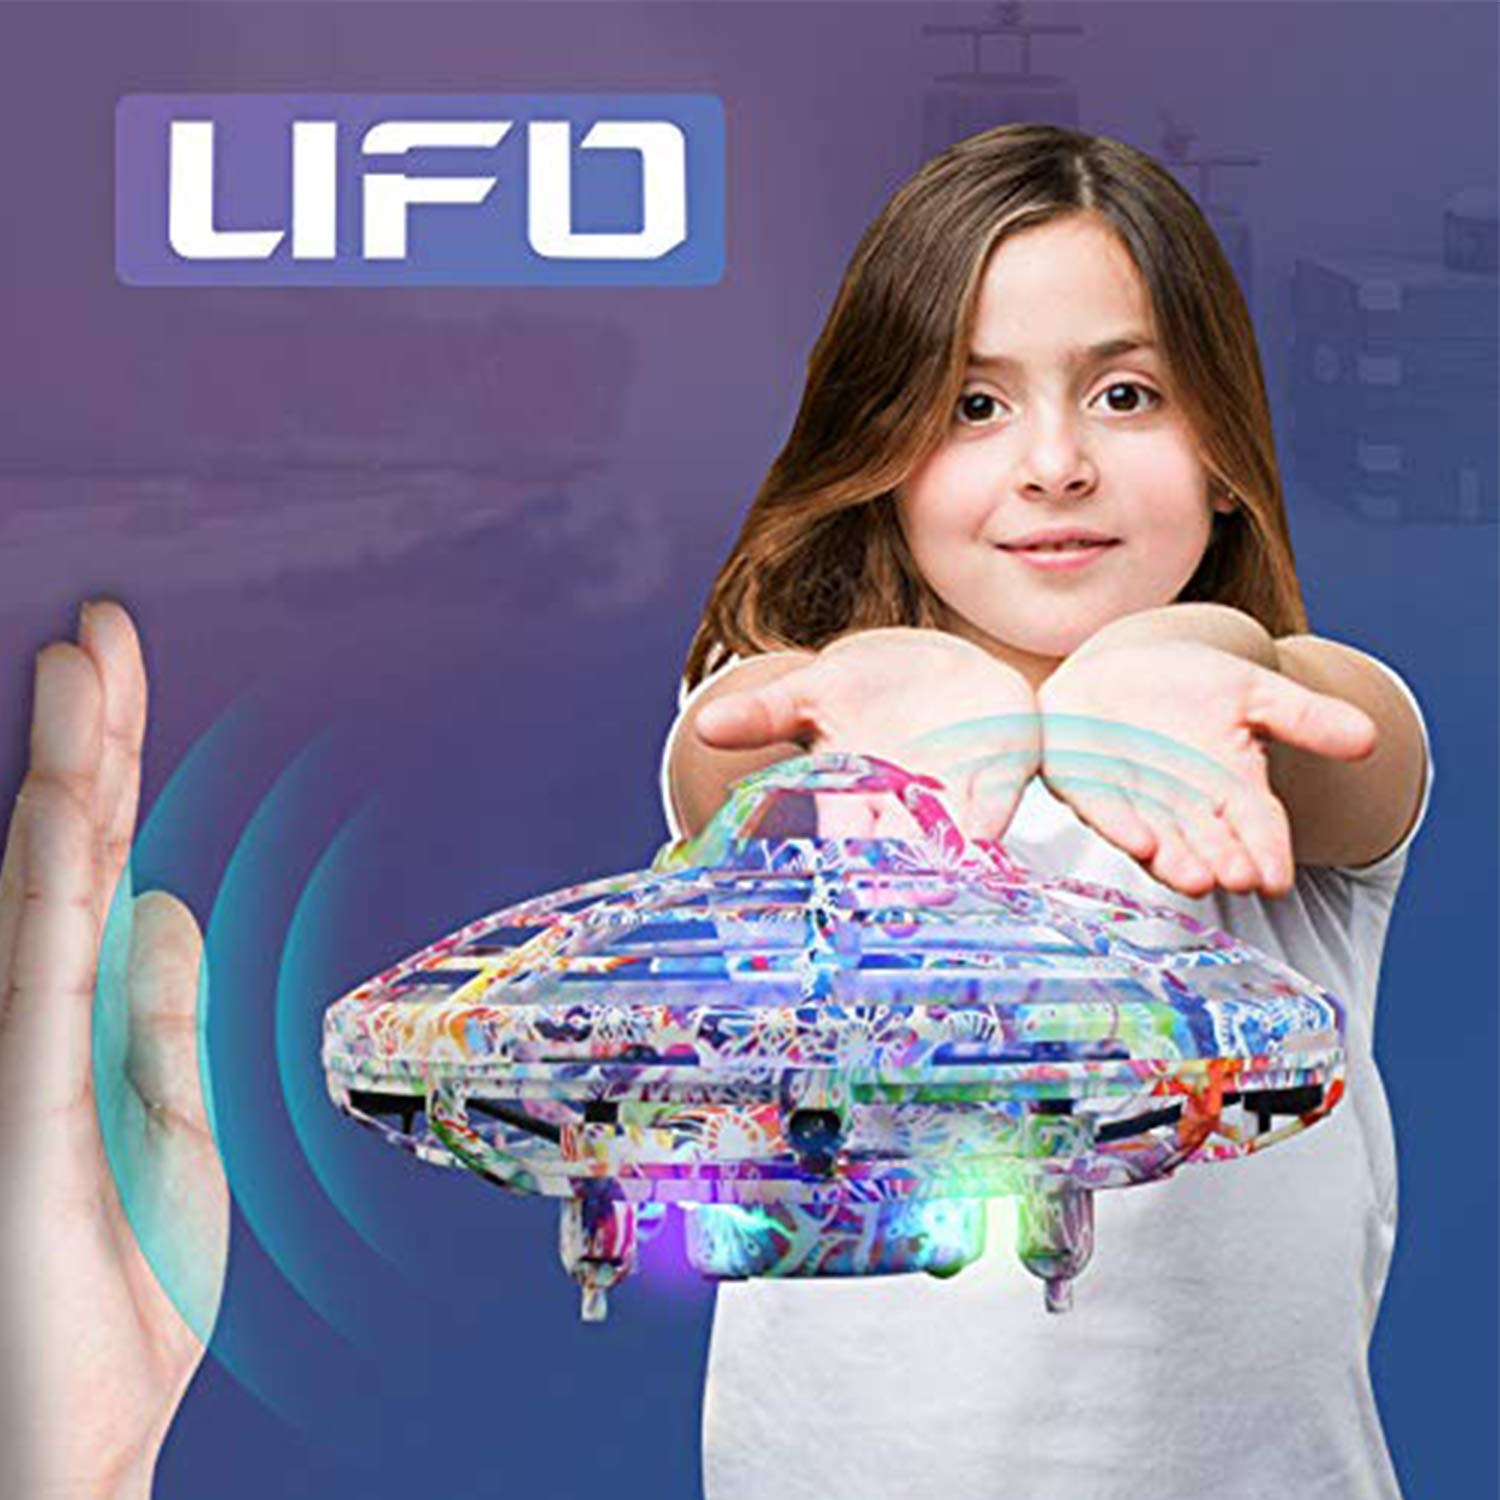 Flying Ball Toy, Cool UFO Hand-Controlled Drone Quadcopter Flying RC Toy for Boys Girls Valentines Gift,Colorful Flashing LED Lights Interactive Infrared Induction Helicopter Ball with 360Rotating by FUNSEA (Image #6)